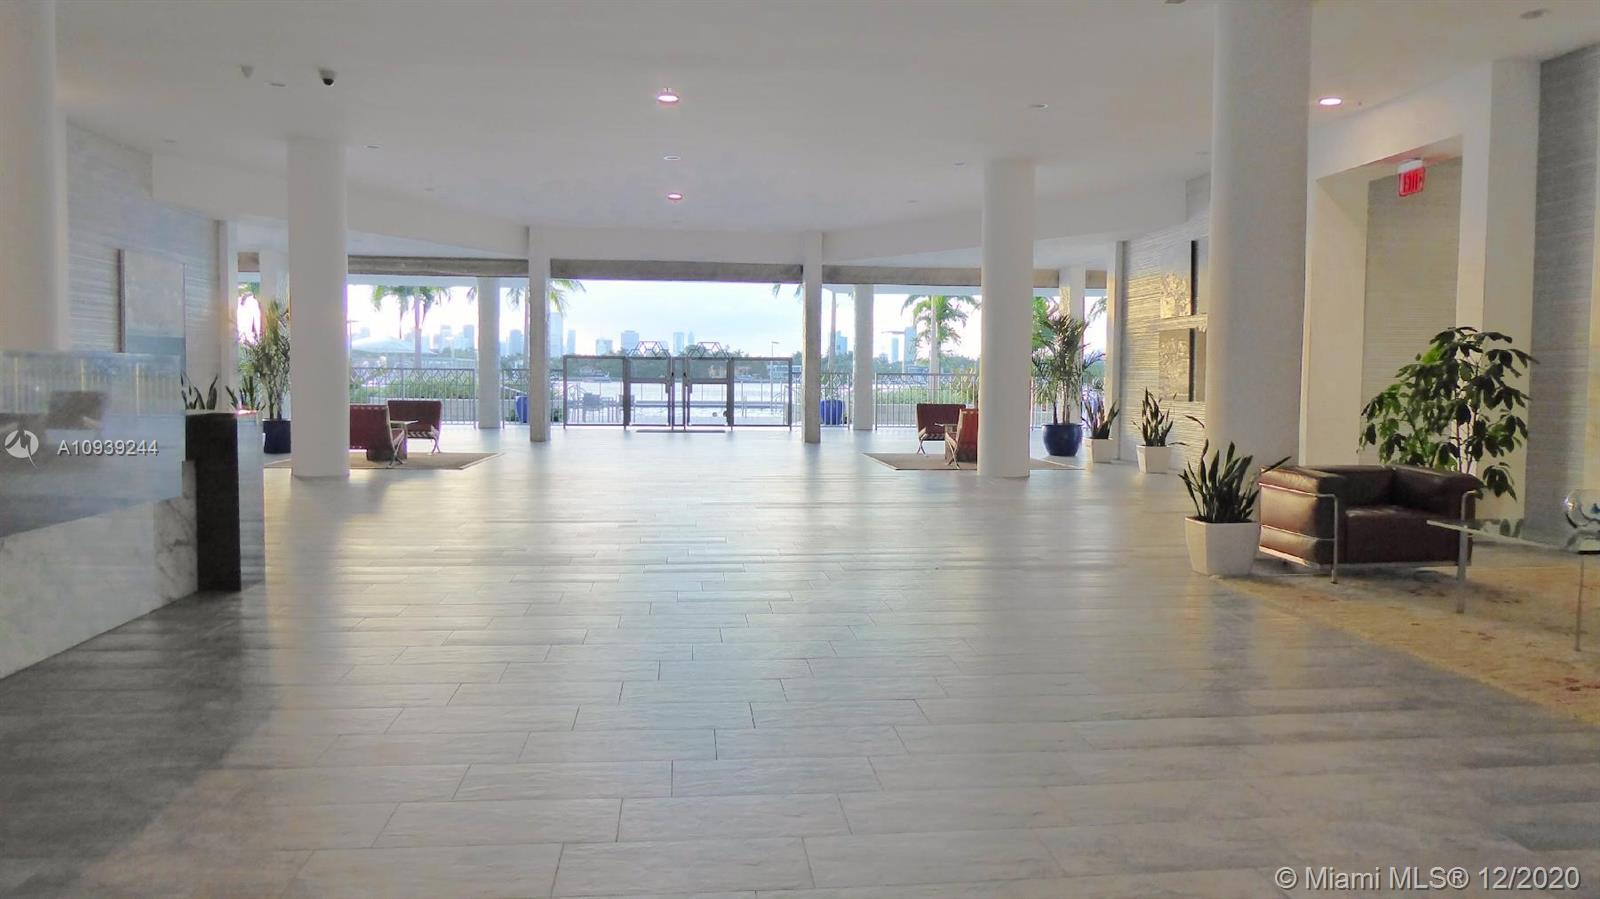 South Bay Club #410 - 800 West Ave #410, Miami Beach, FL 33139